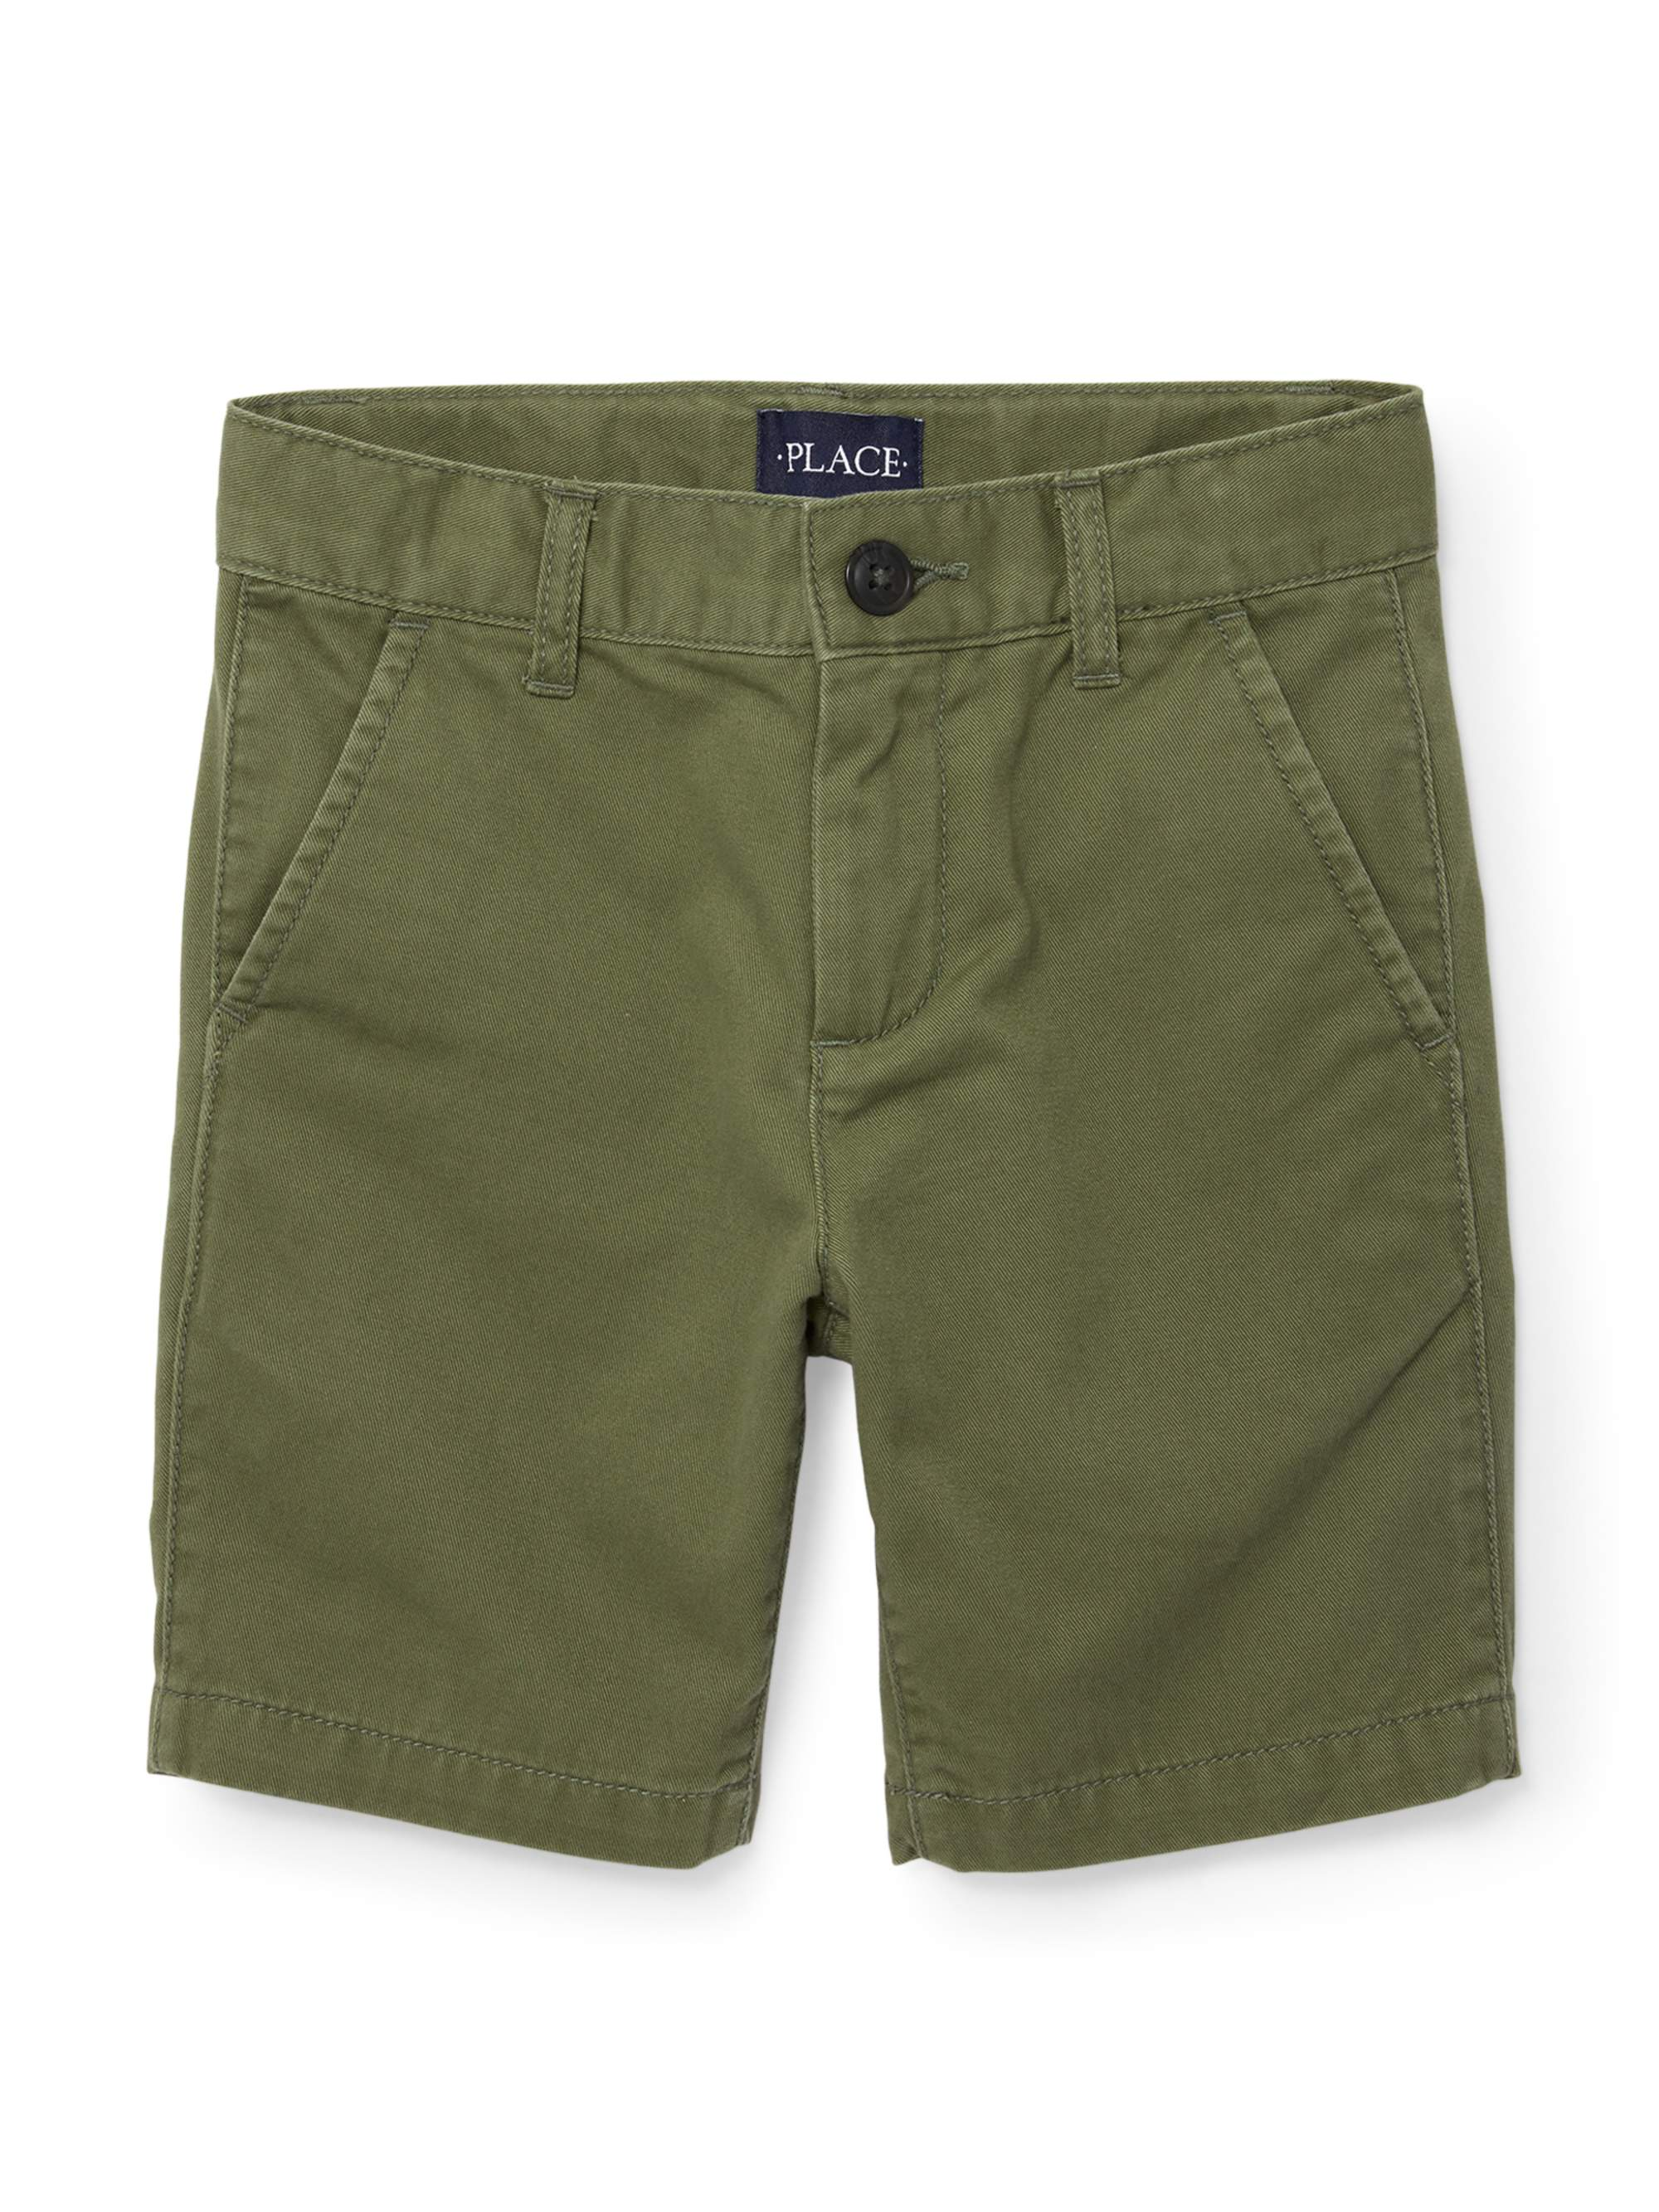 The Childrens Place Boy's Flat Front Twill Short